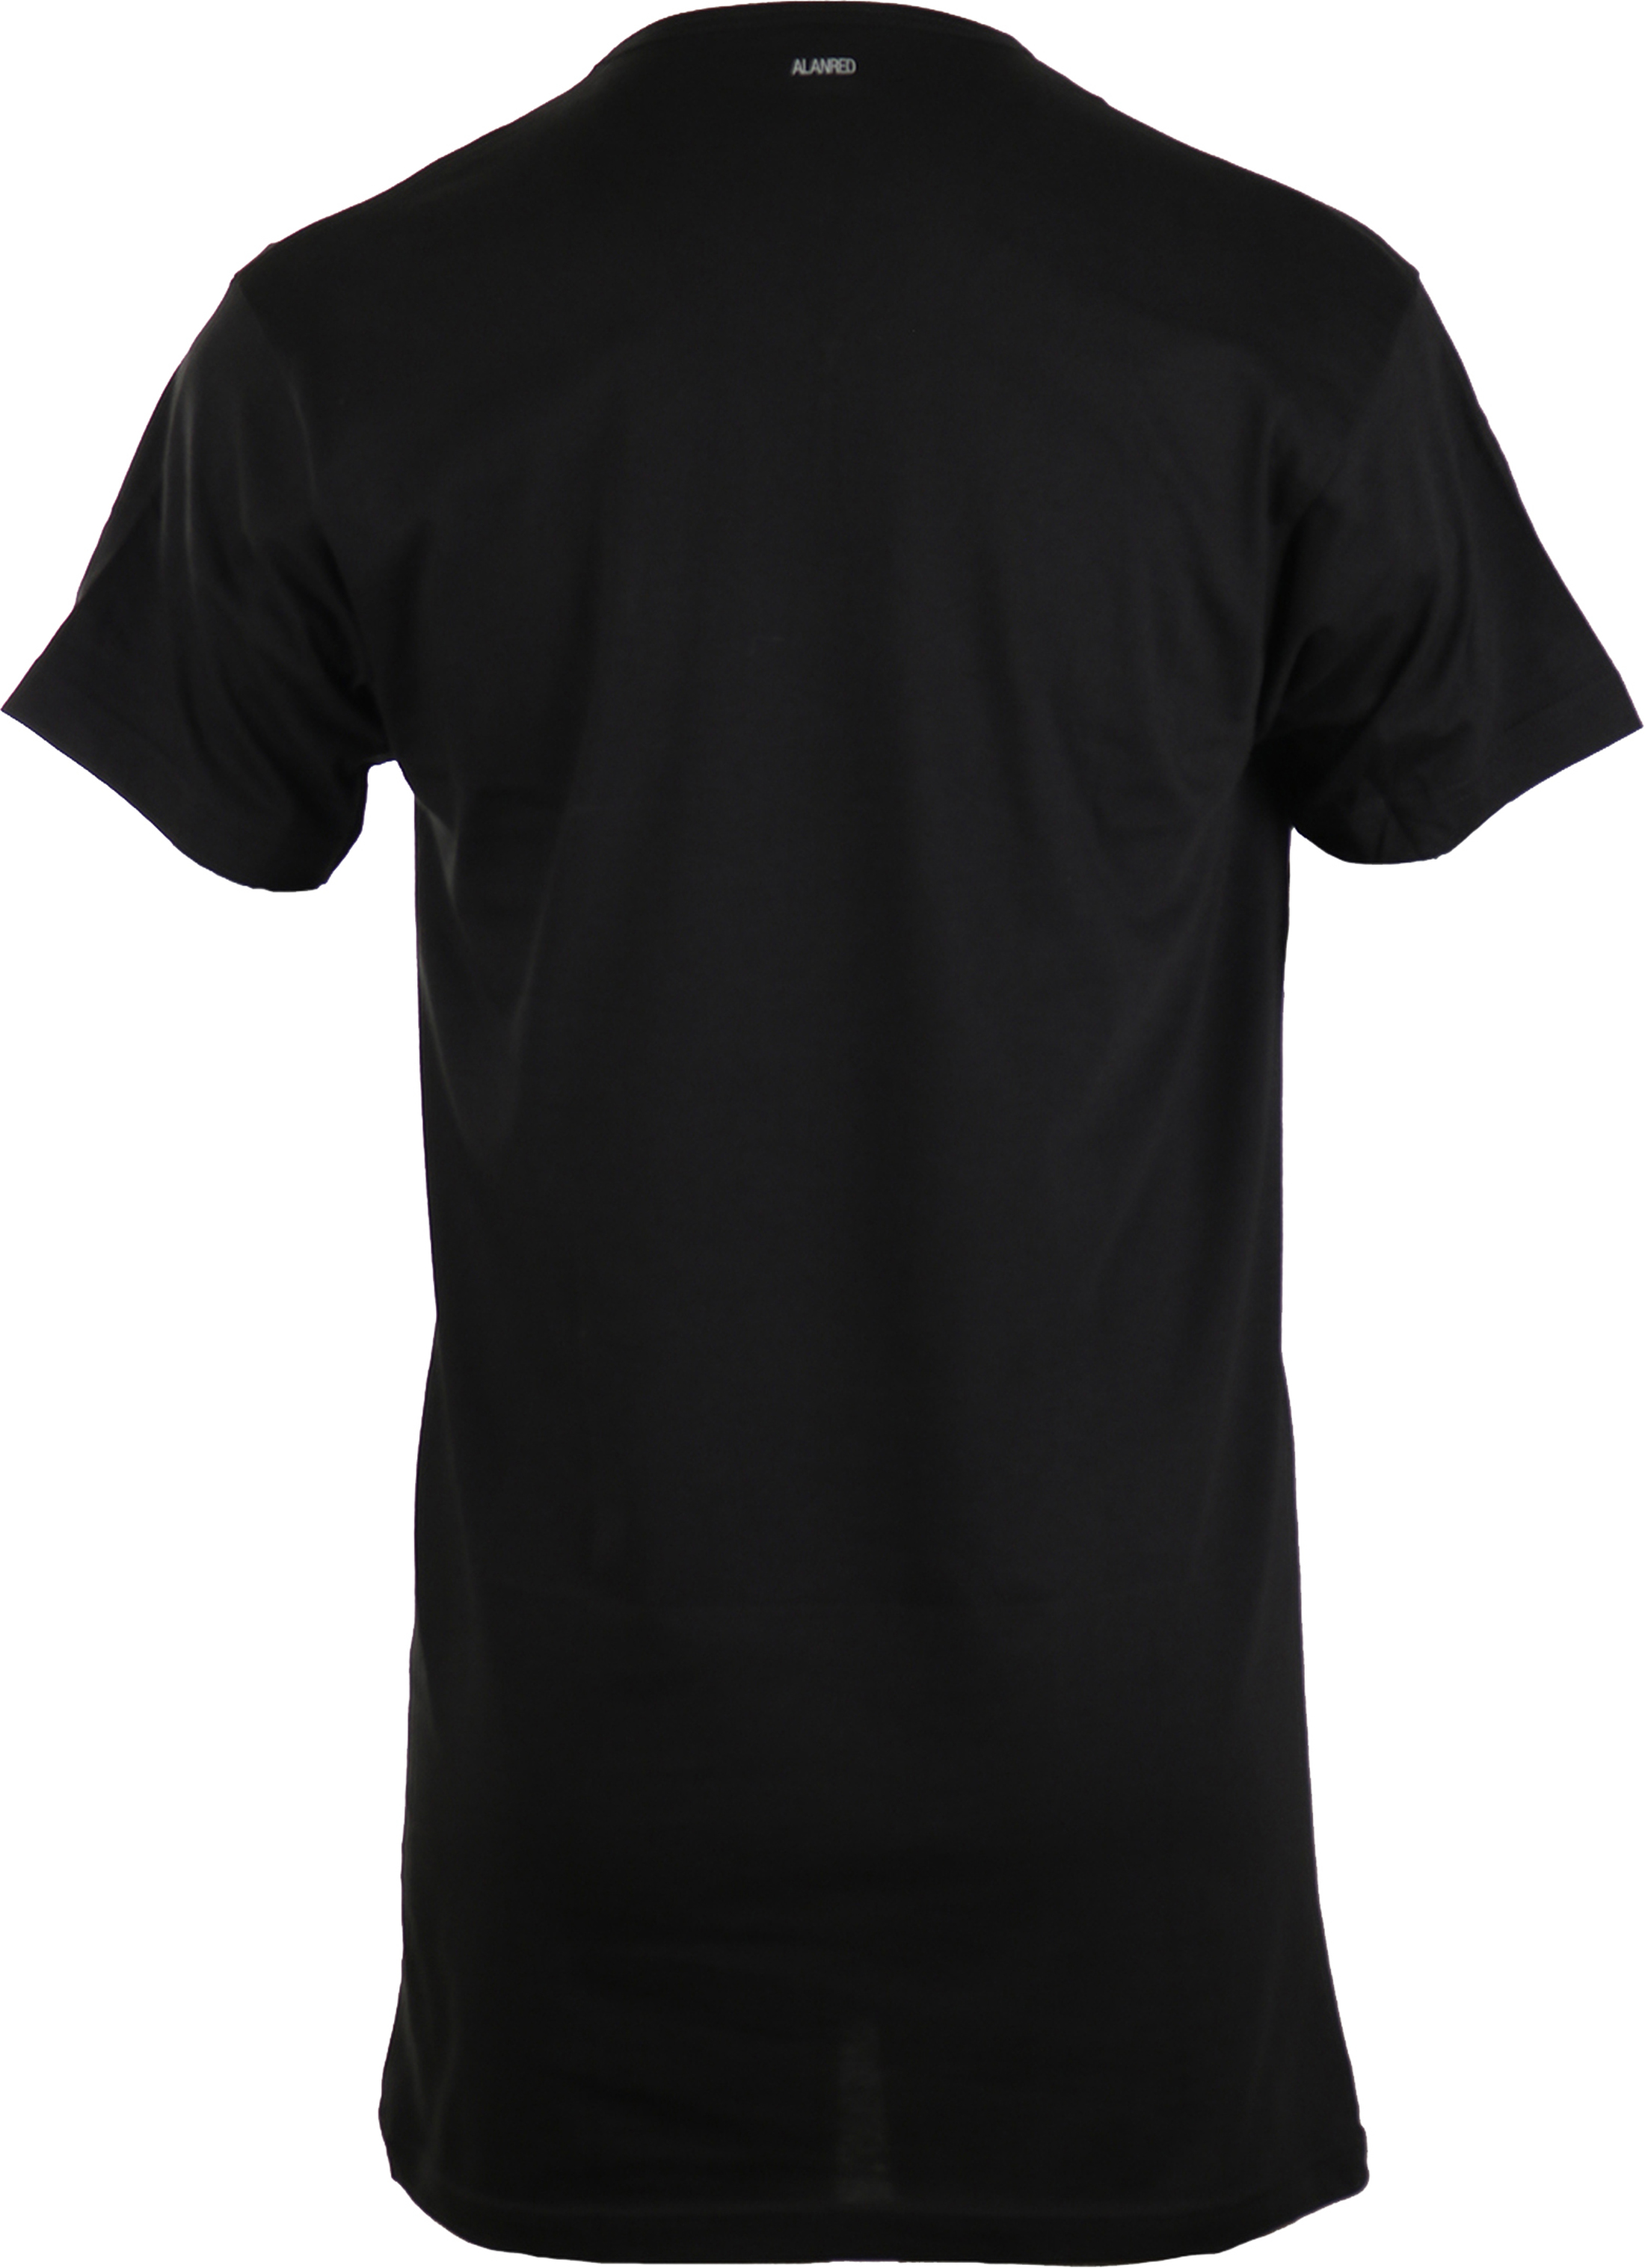 Alan Red Extra Long T-Shirt Vermont Black (1pack) foto 1